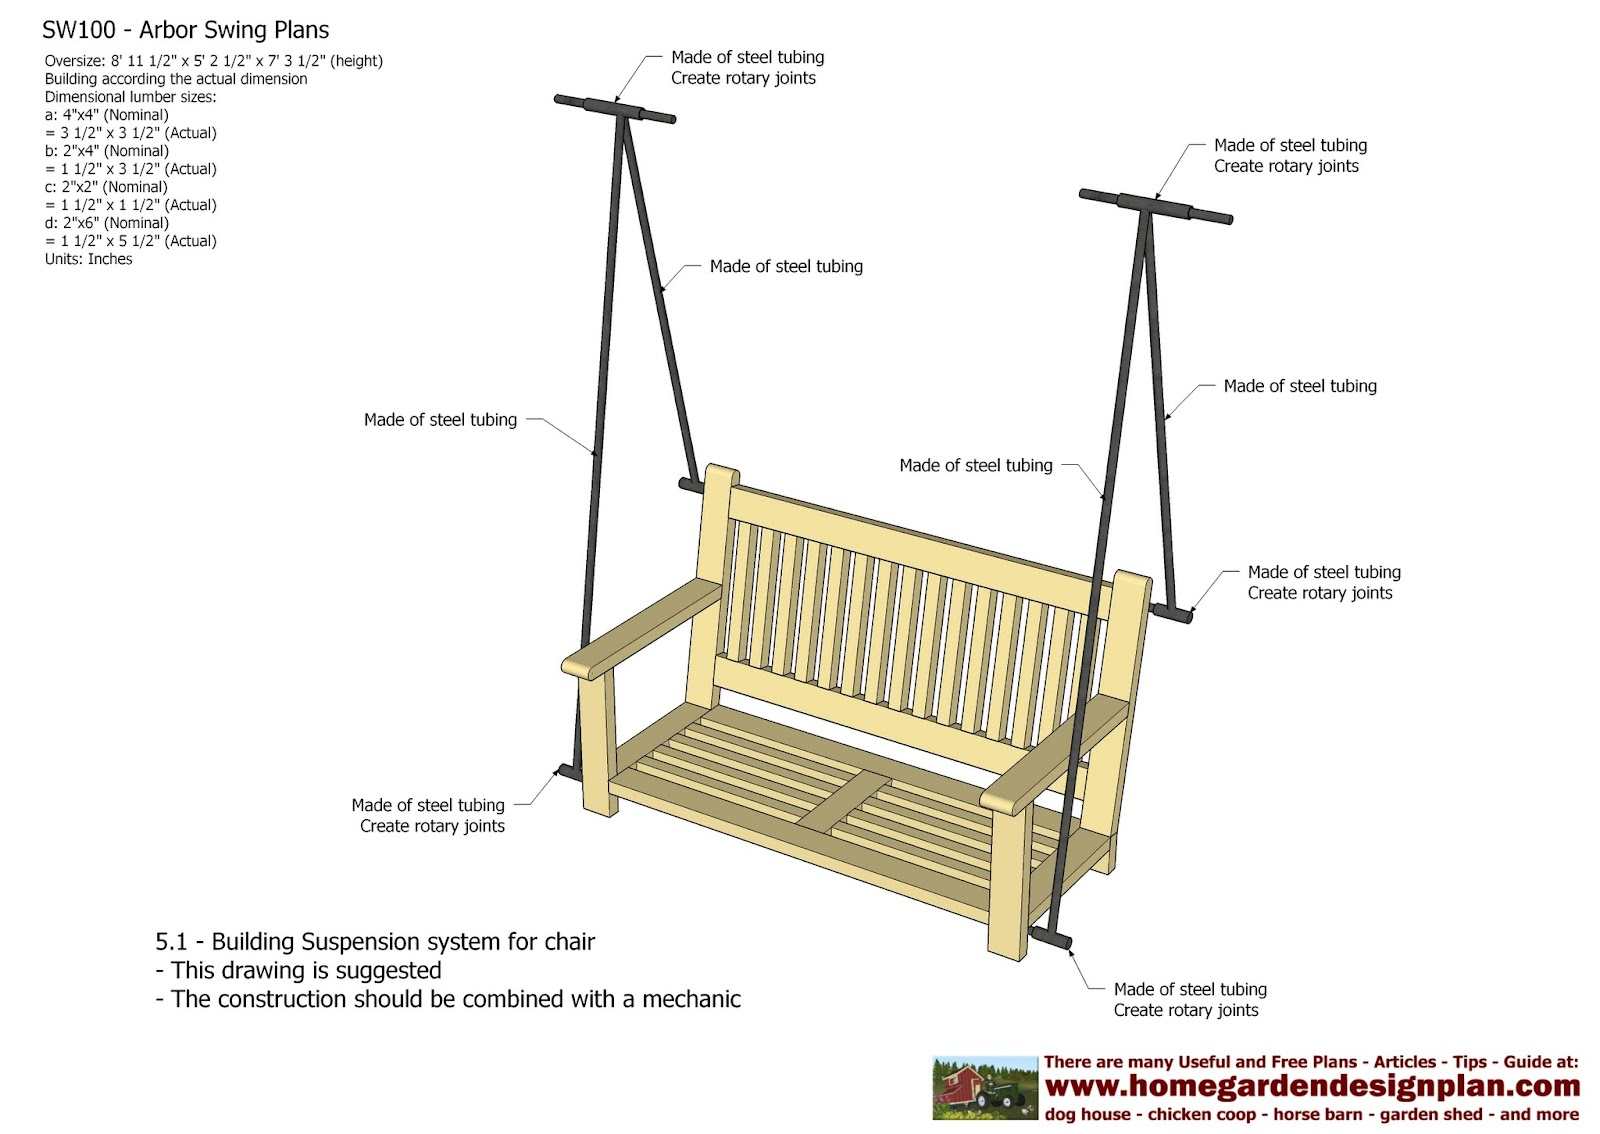 Home garden plans sw100 arbor swing plans swing for Outdoor swing plans